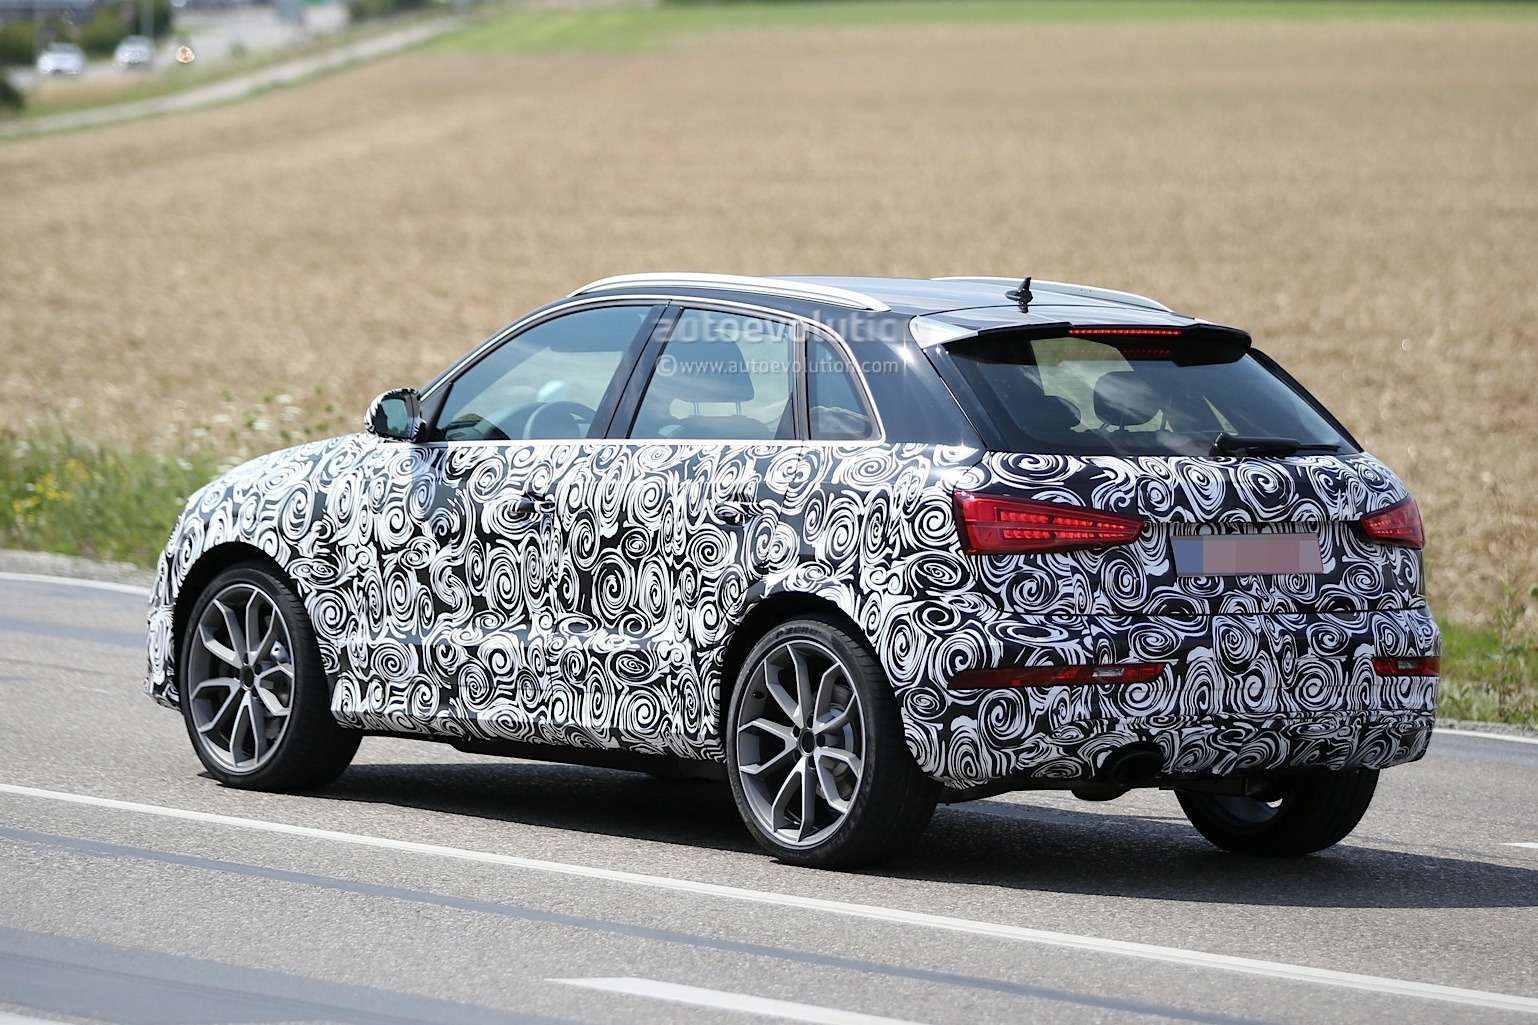 2016-audi-rs-q3-facelift-joins-q3-during-testing-session_12